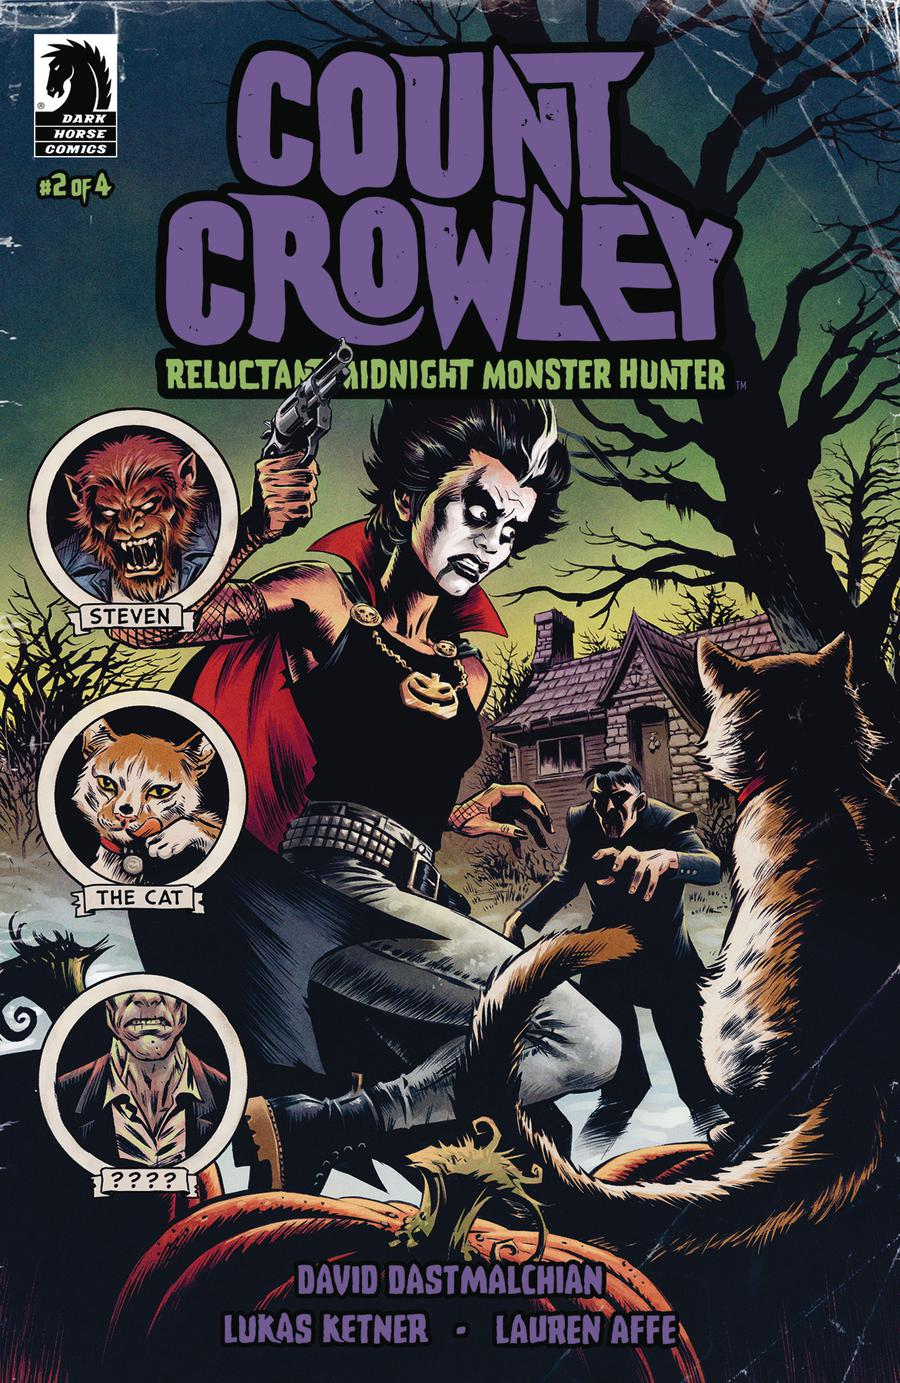 Count Crowley Reluctant Midnight Monster Hunter #2